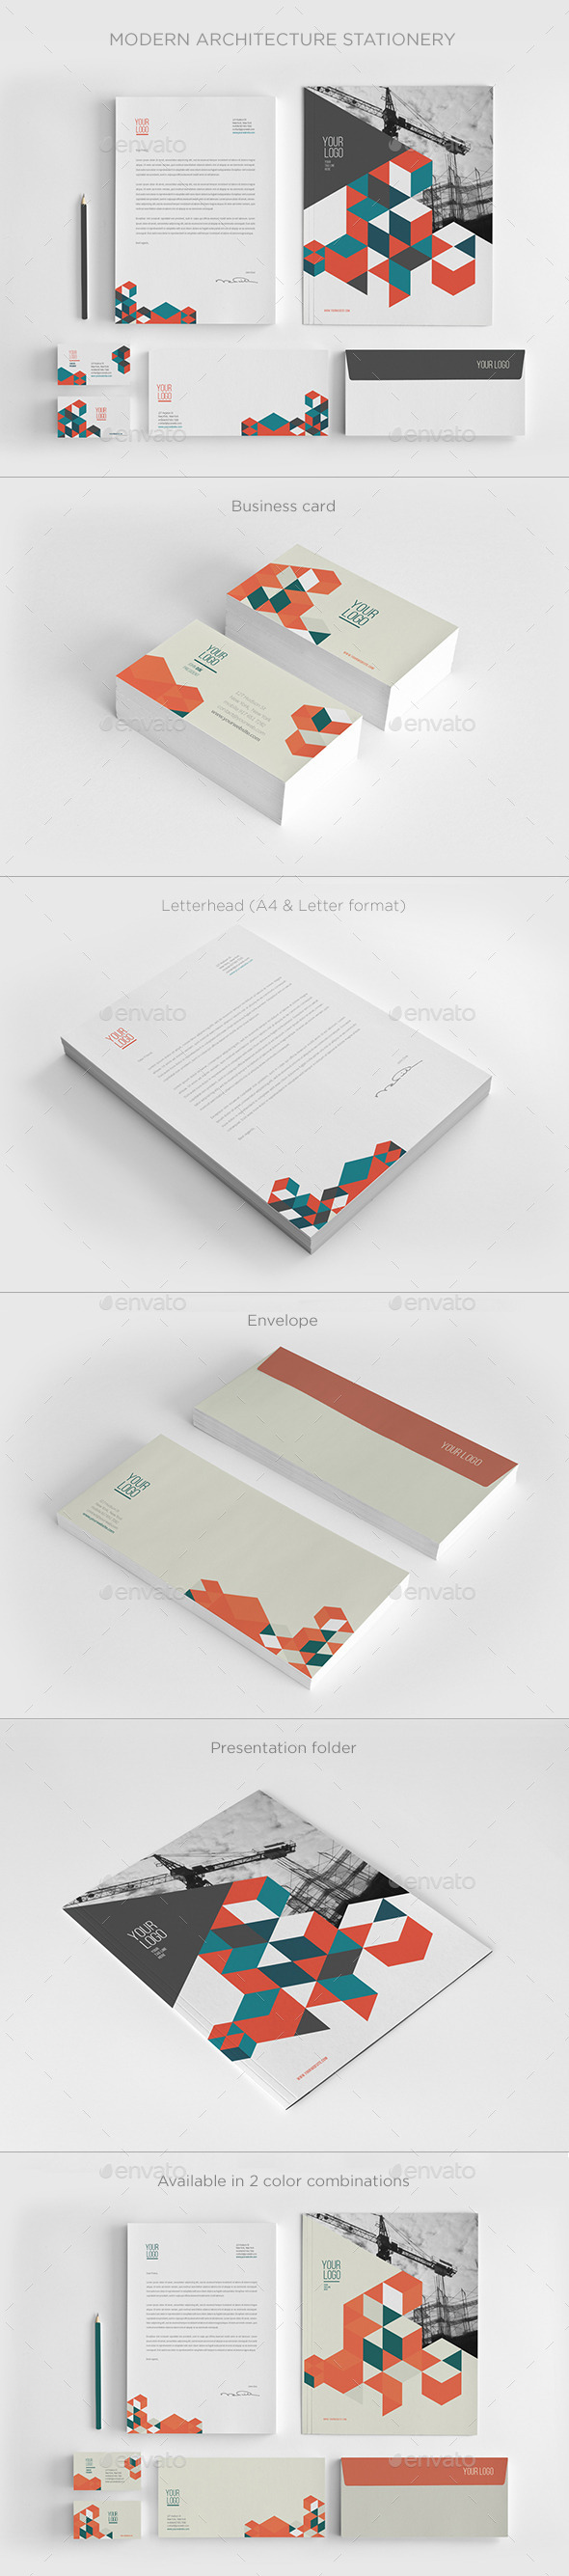 GraphicRiver Modern Architecture Stationery 11630112